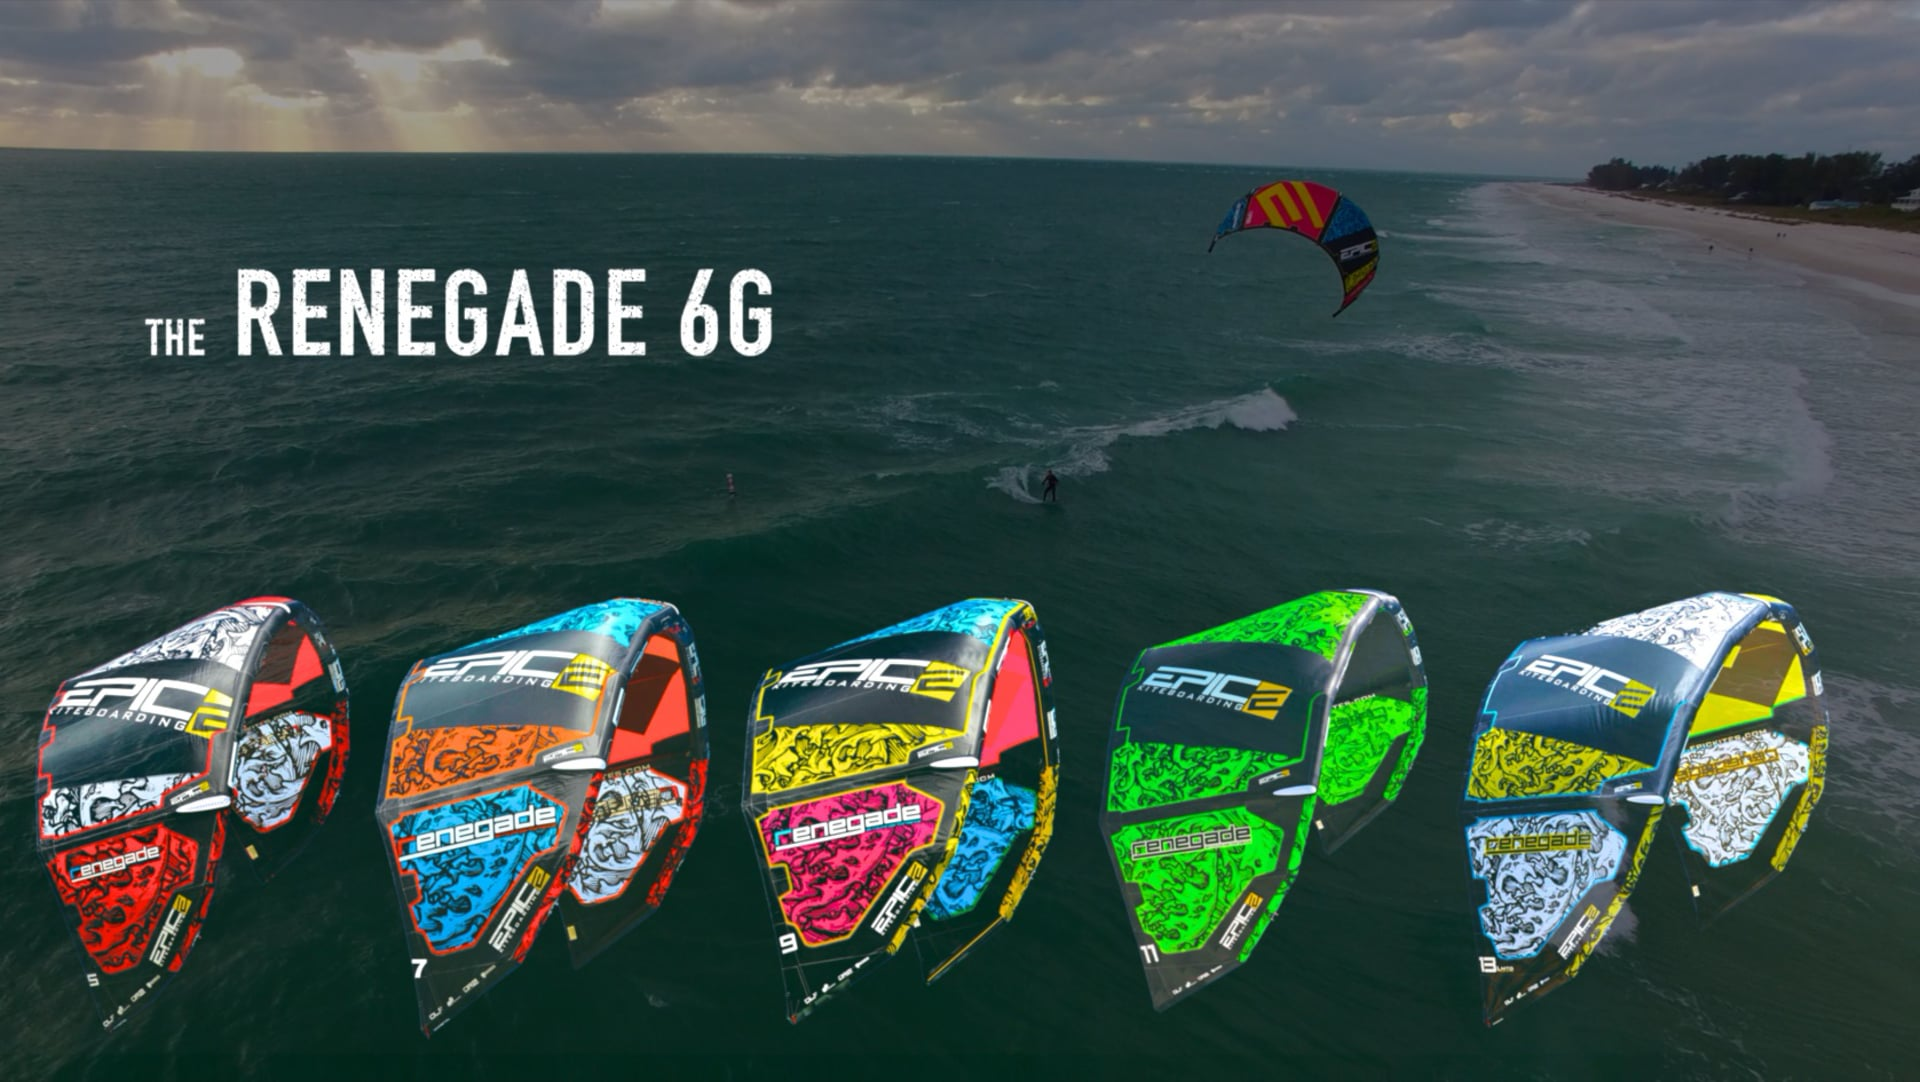 Kiters loving the new RENEGADE 6G - with Epic Kites Kiteboarding